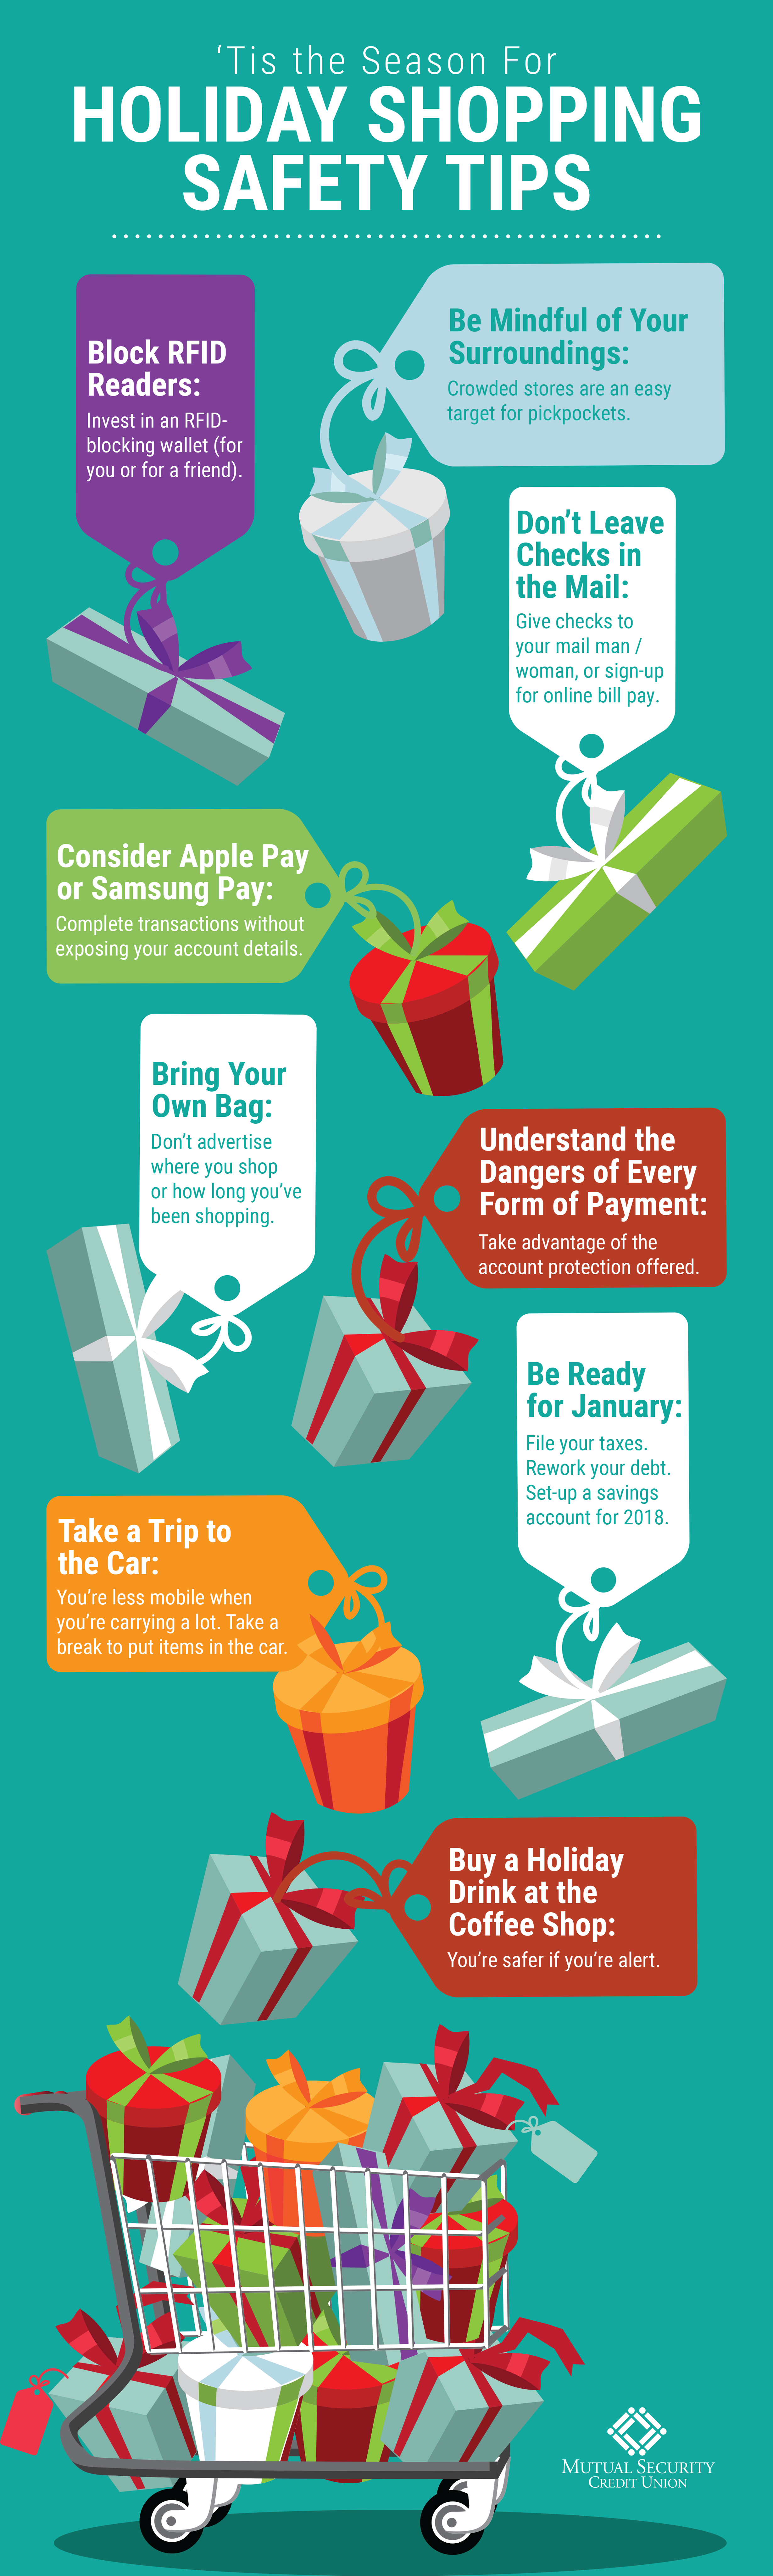 HolidayShoppingSafety_Infographic.png